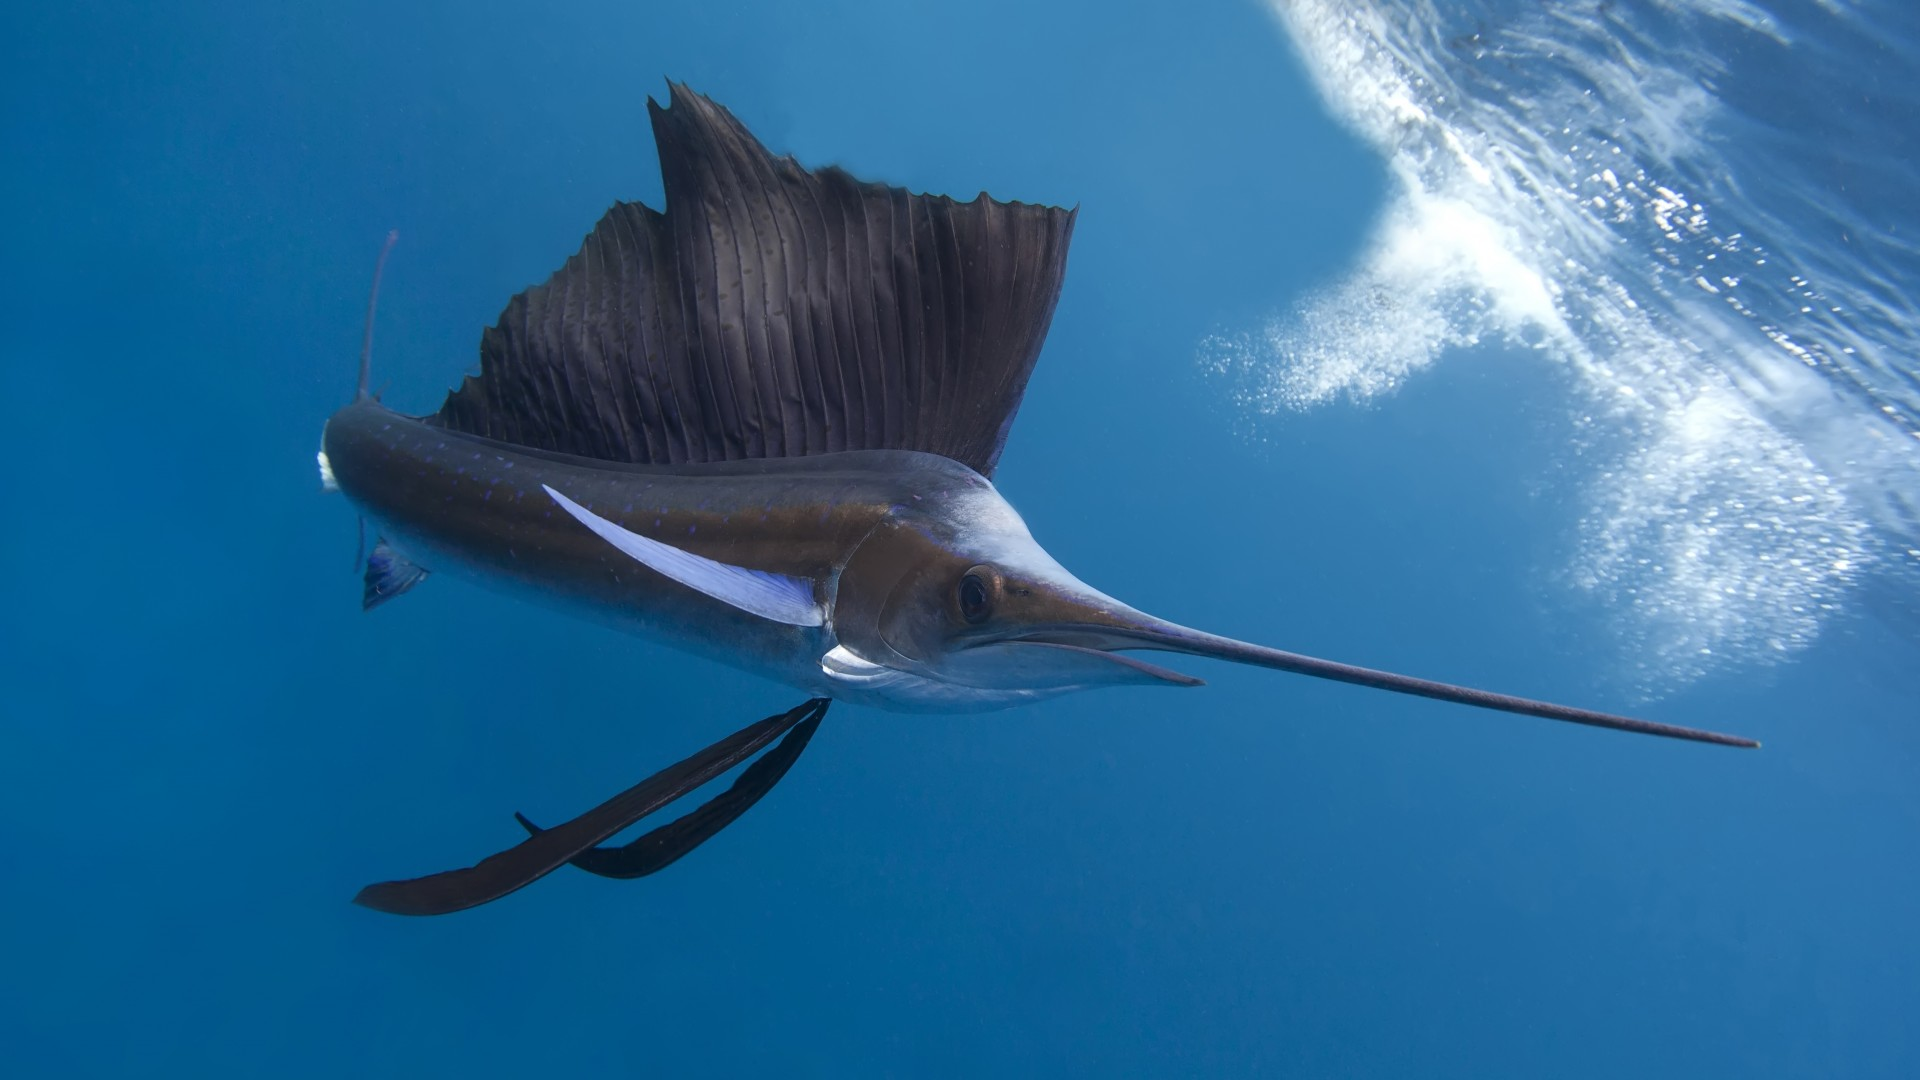 Pacific sailfish, Thailand, Indian ocean, Pacific ocean, tropical regions, diving, tourism, blue sea, fish, diving, tourism, World's best diving sites (horizontal)